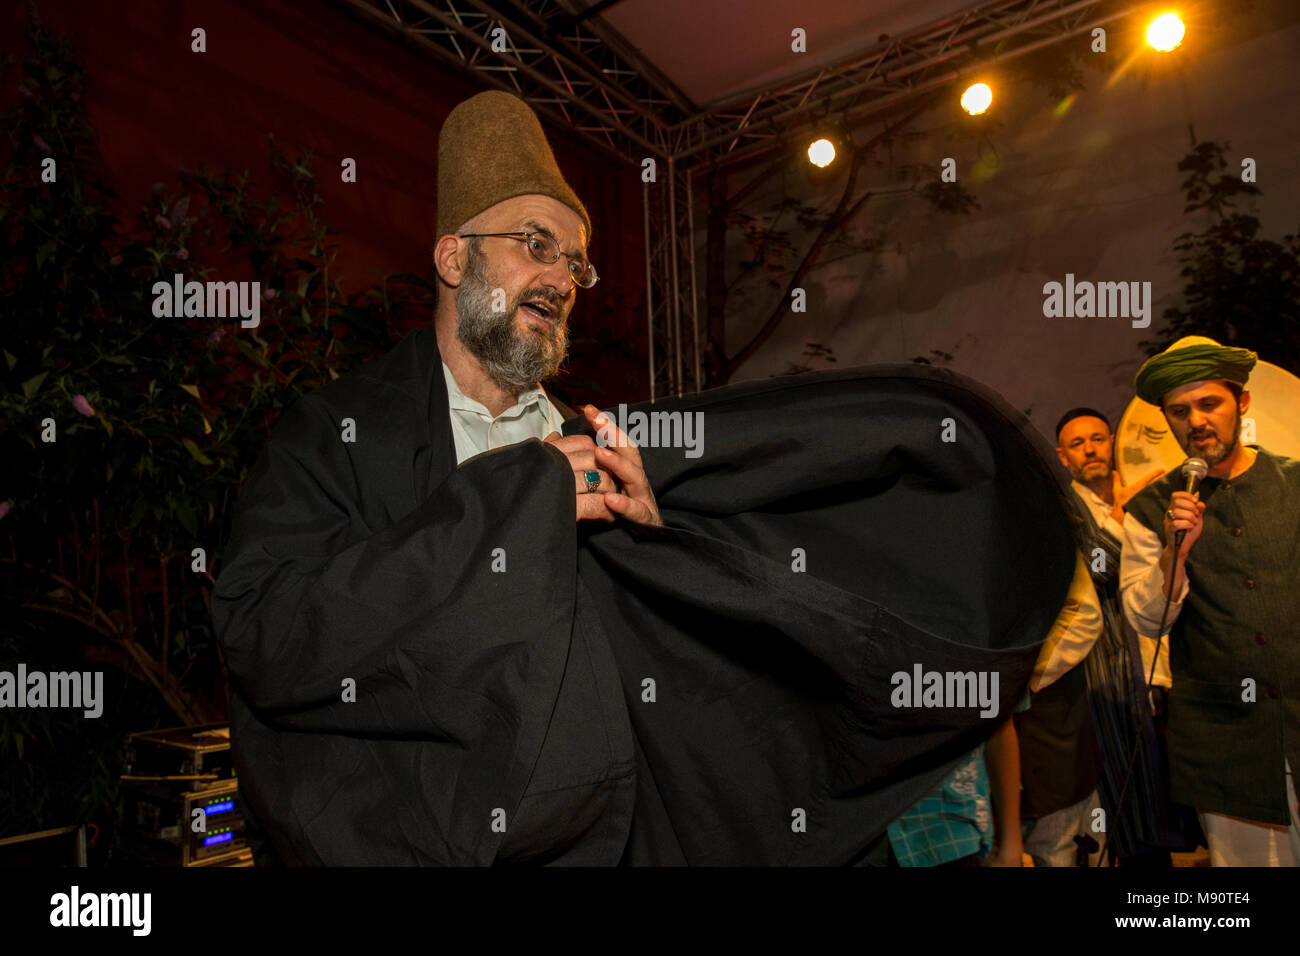 Sufi music concert at the Institute of Islamic Cultures, Paris, France. Whirling Dervish. - Stock Image